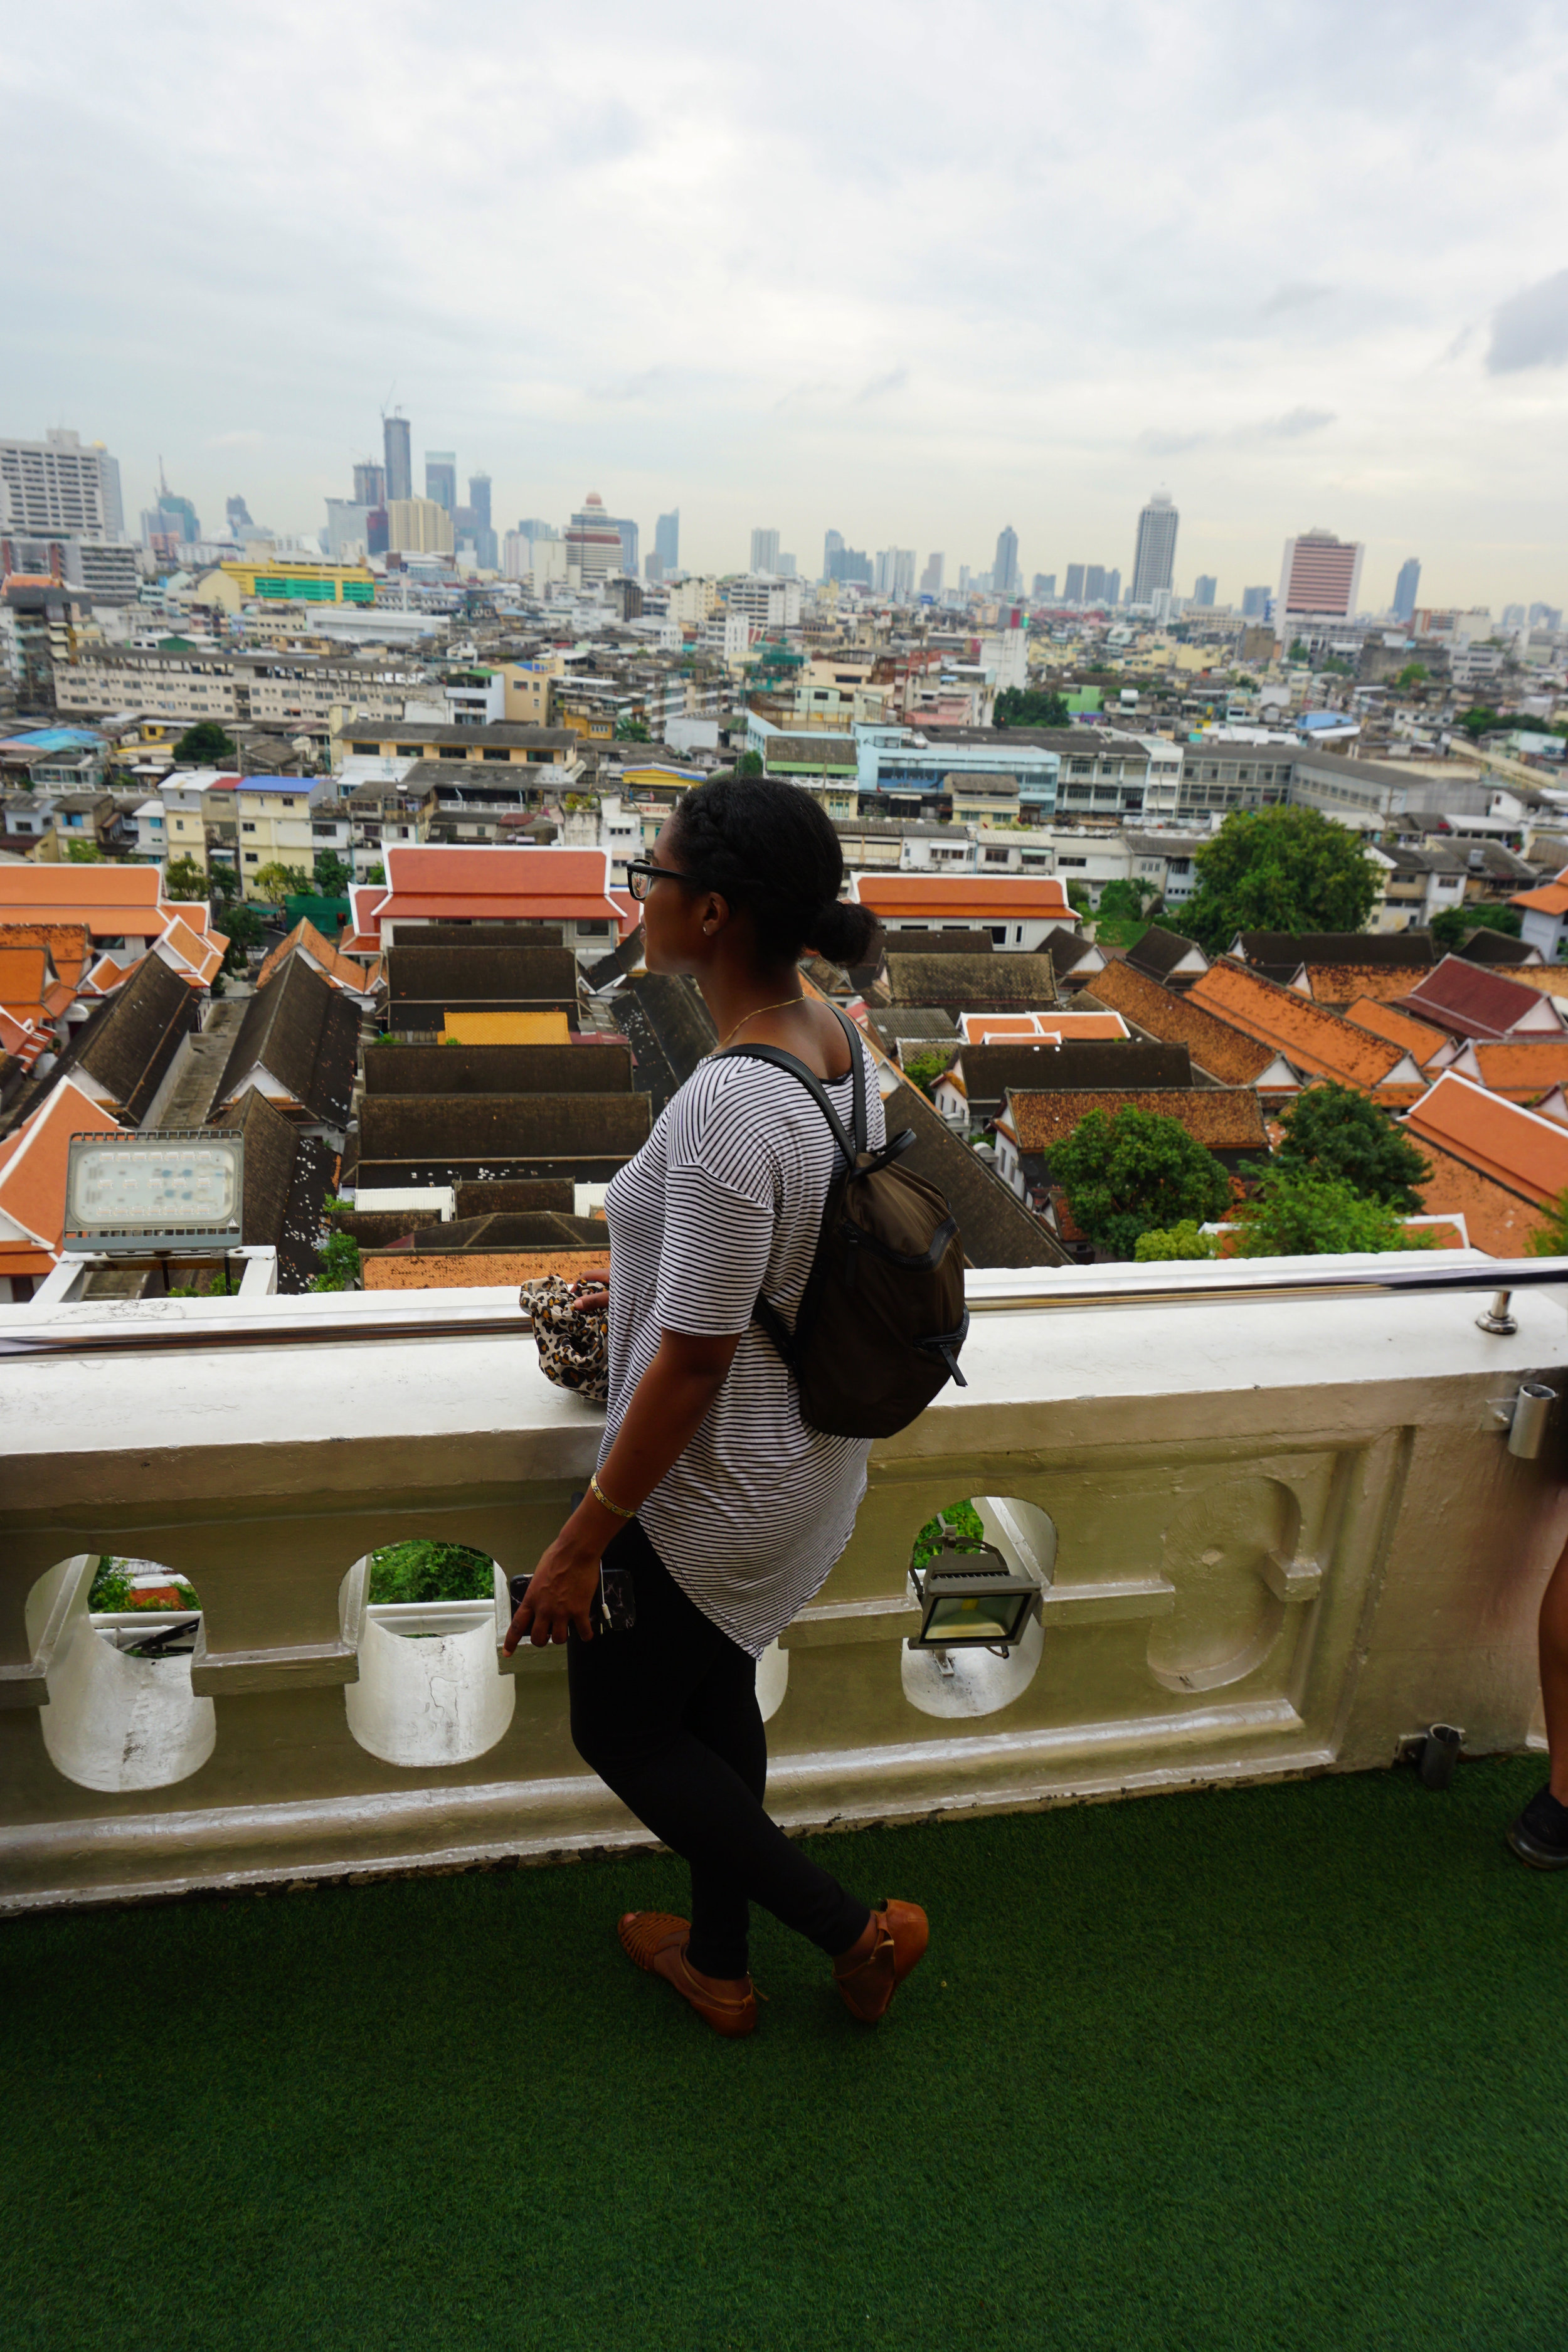 View of Bangkok from the top of the Golden Mount temple